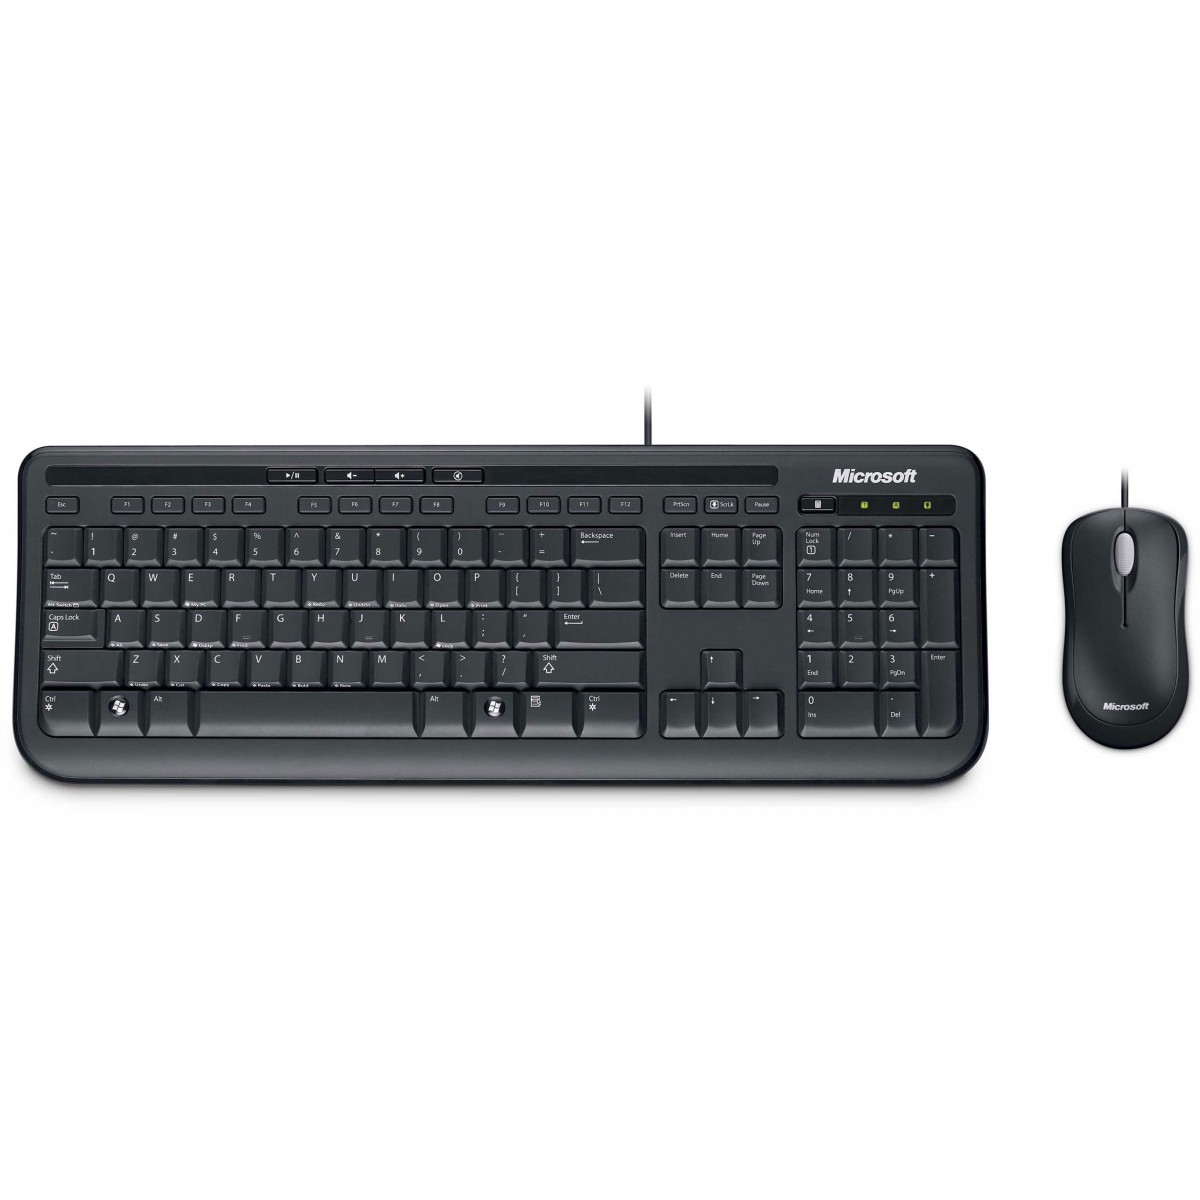 Microsoft 600 Wired Keyboard & Mouse Combo